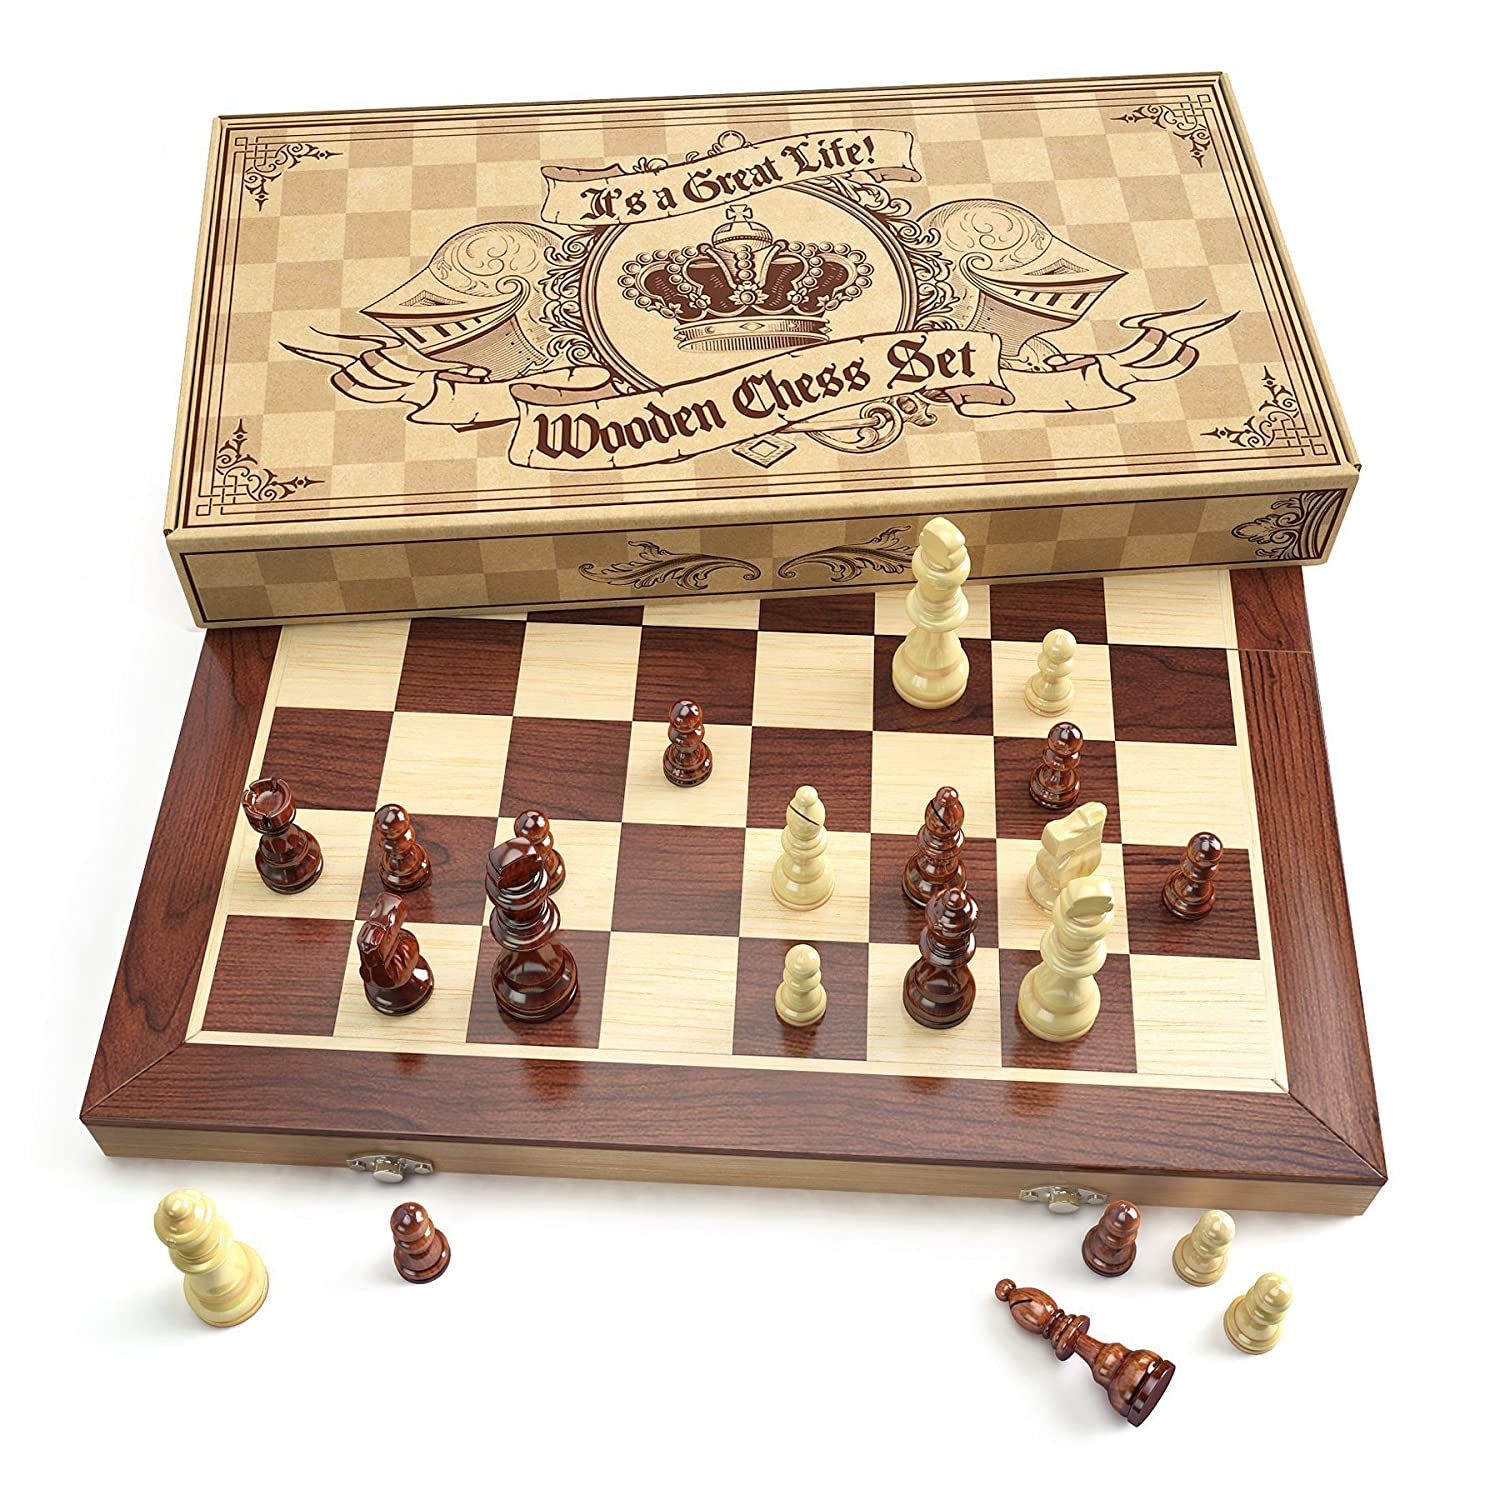 enjoyable ideas cheap chess sets. Amazon com Wooden Chess Set Universal Standard Board Game Handcrafted Wood  Pieces Pawns With 15 inch and with Magnet enjoyable ideas cheap The Best 100 Enjoyable Ideas Cheap Sets Image Collections